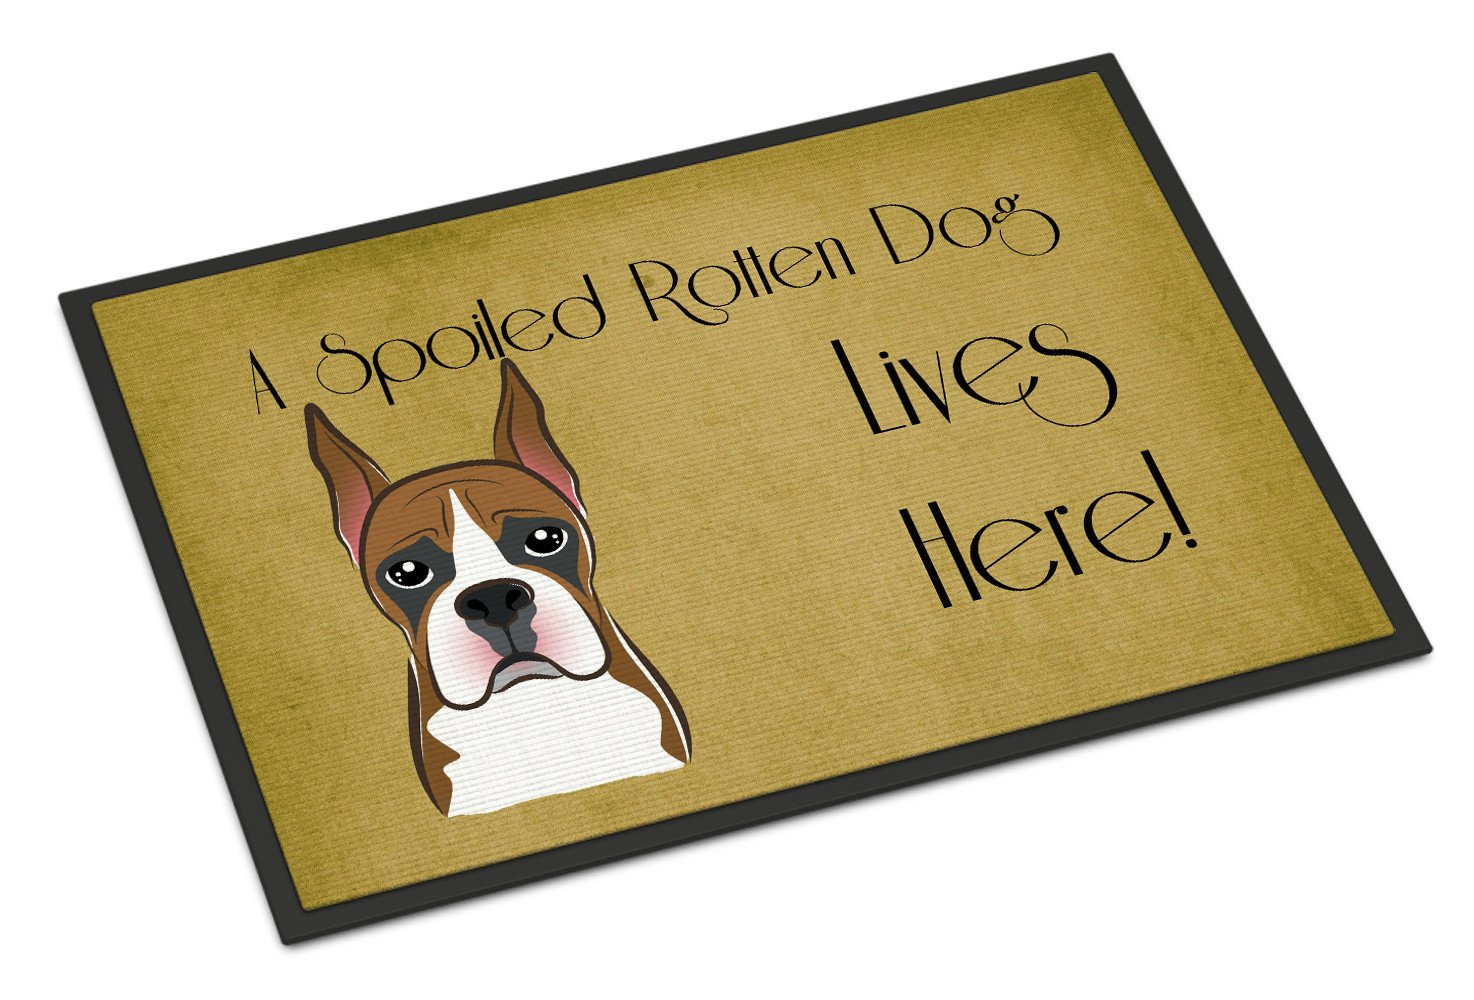 Boxer Spoiled Dog Lives Here Indoor or Outdoor Mat 18x27 BB1471MAT - the-store.com